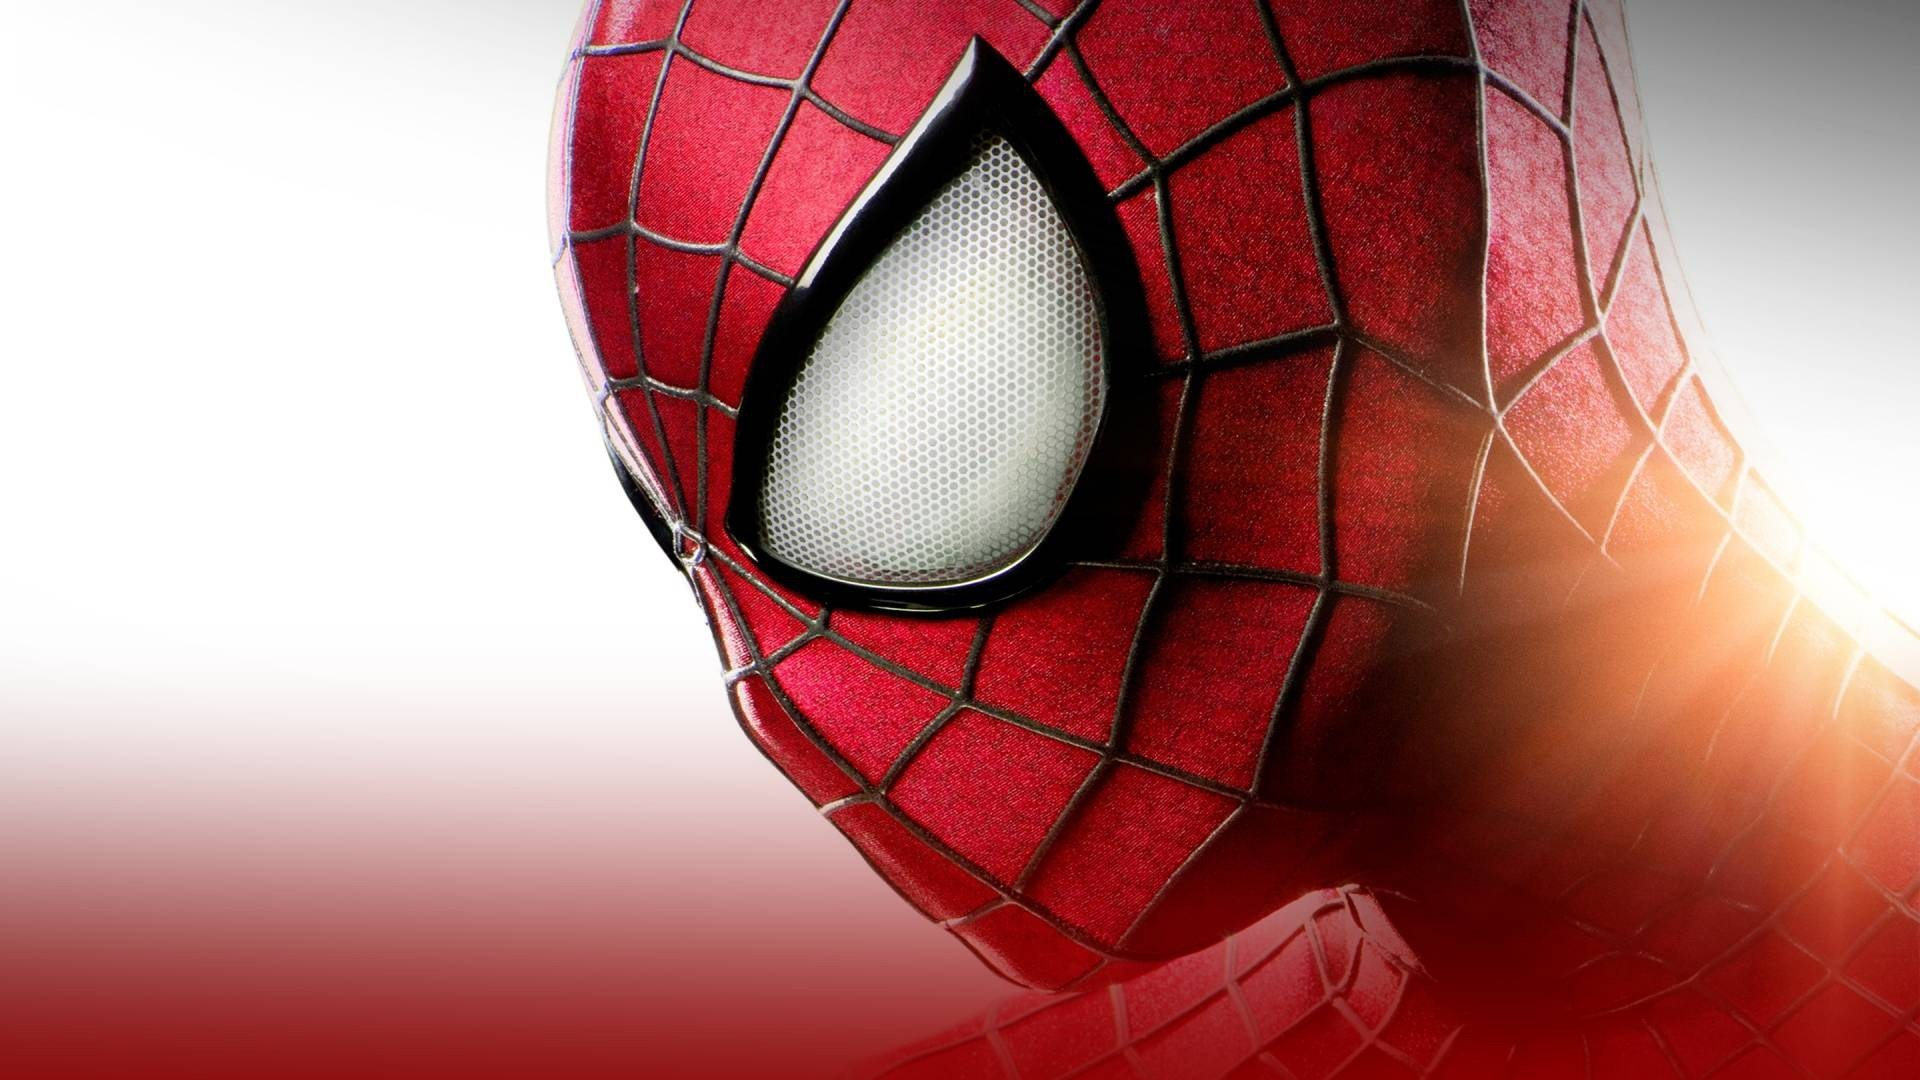 Mascara de Spiderman - 1920x1080